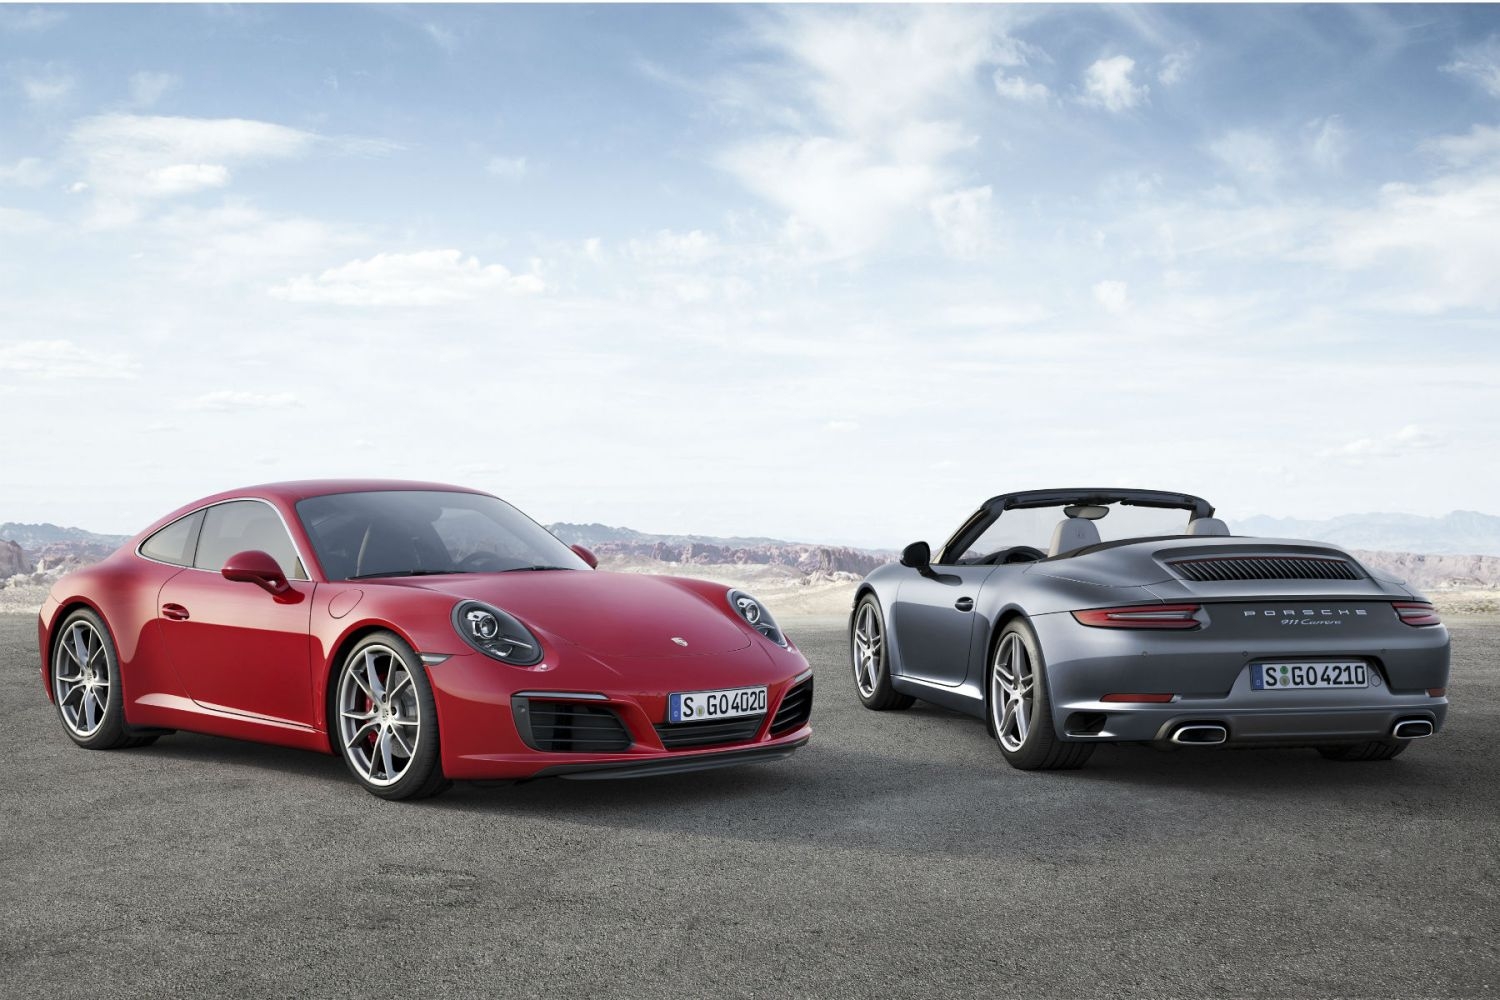 2016 Porsche 911 Carrera revealed – and it's turbocharged